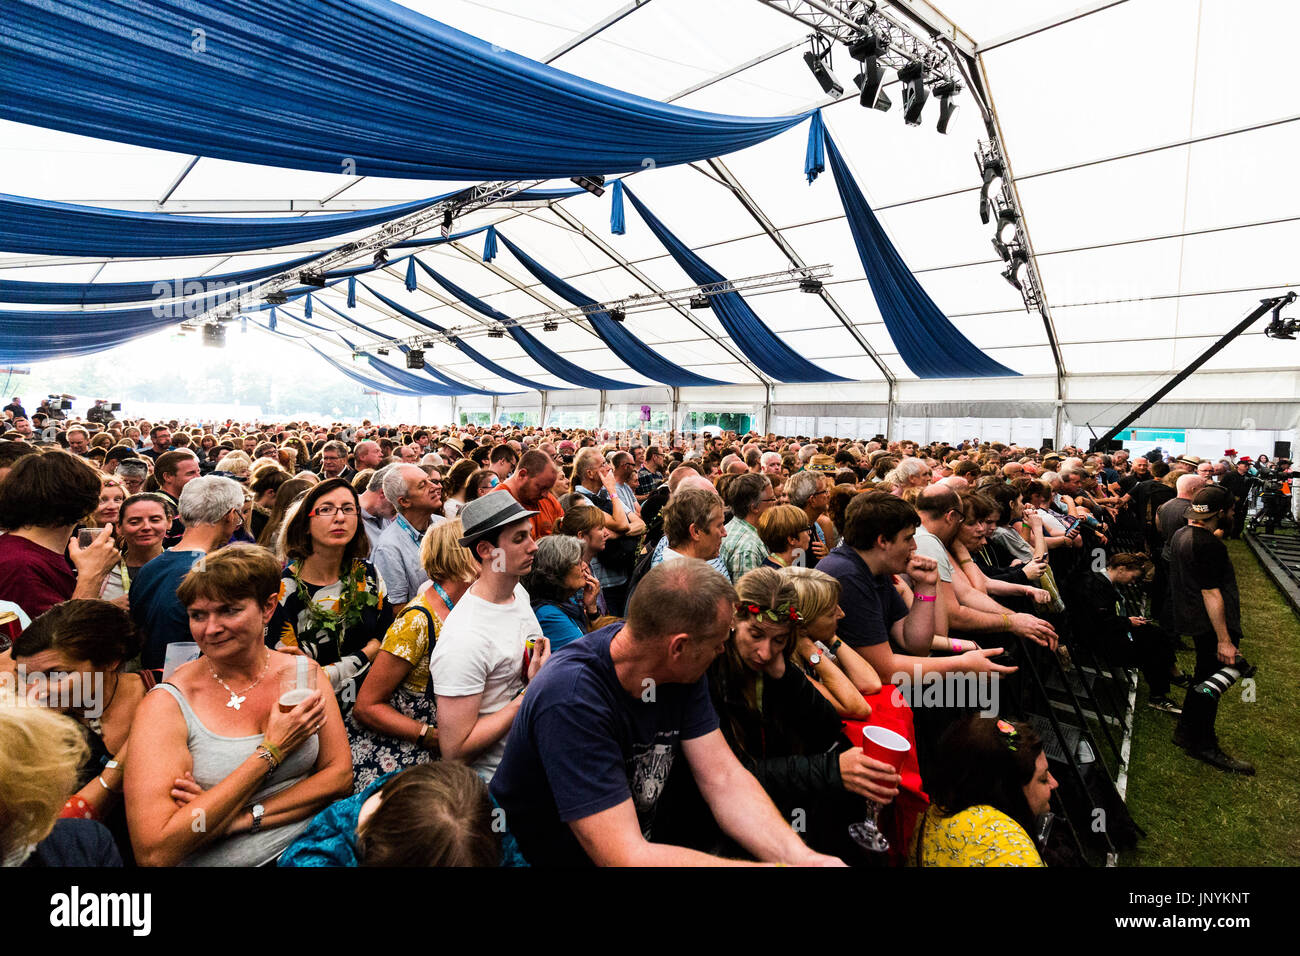 Cambridge, UK. 30th July, 2017 A full crowd at Stage 1 during the Cambridge Folk Festival 2017. Richard Etteridge / Alamy Live News - Stock Image